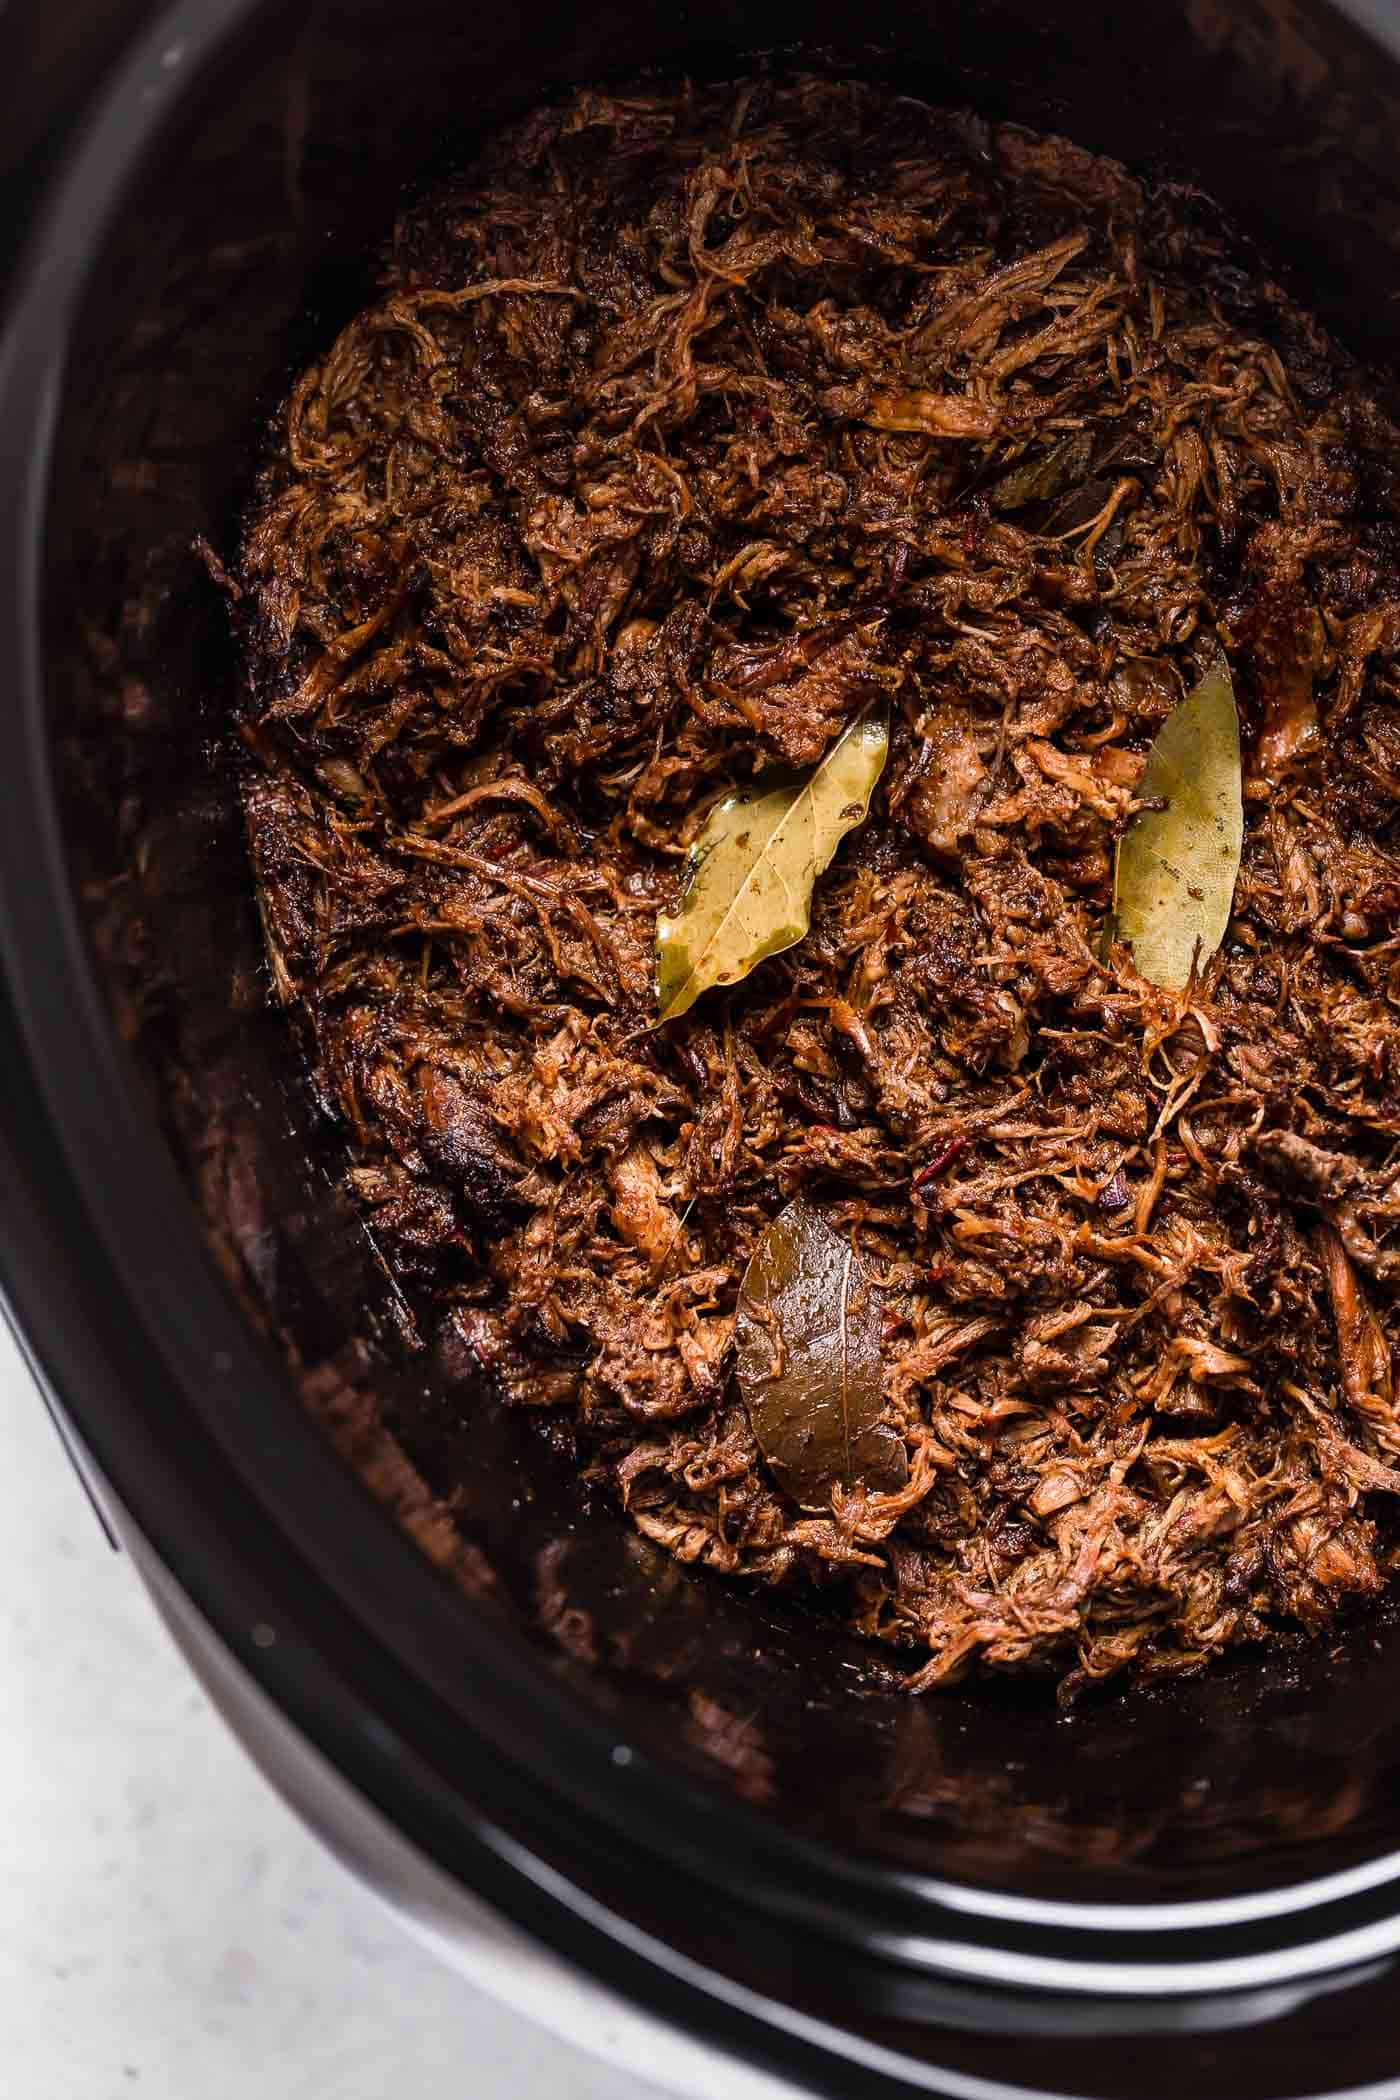 Shredded barbacoa beef in a crock pot.